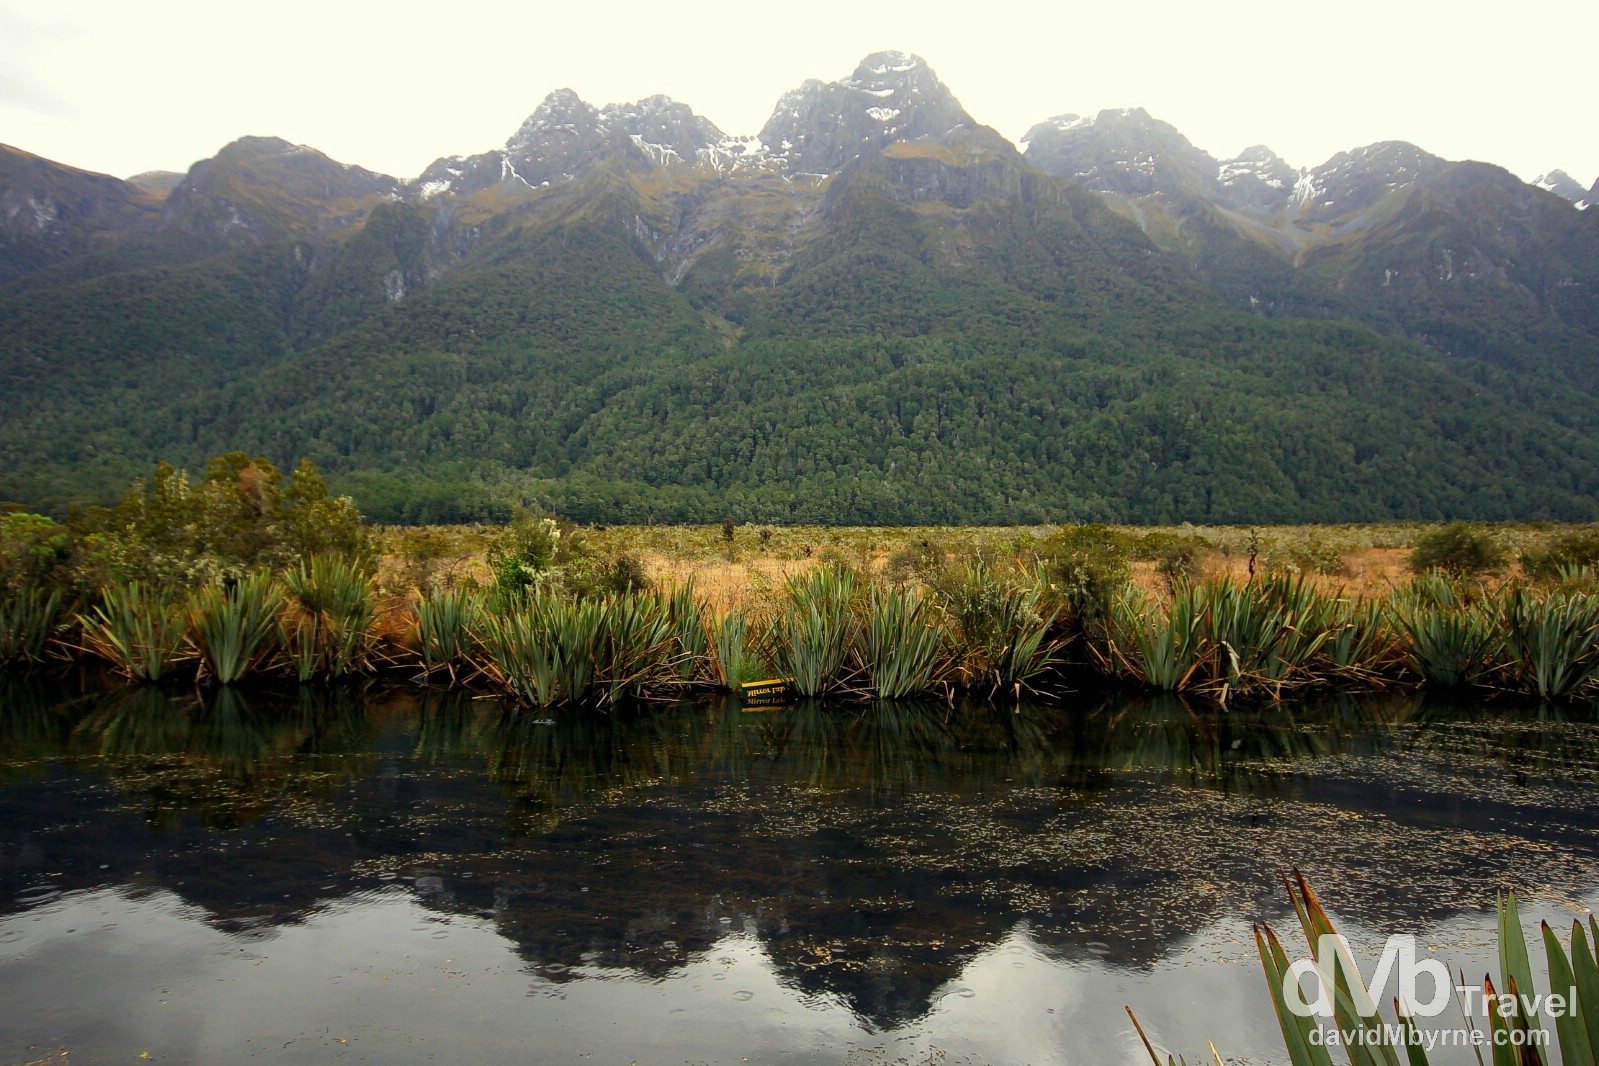 A section of the Mirror Lakes off State Highway 94, Fiordland National Park, South Island, New Zealand. May 26th 2012.